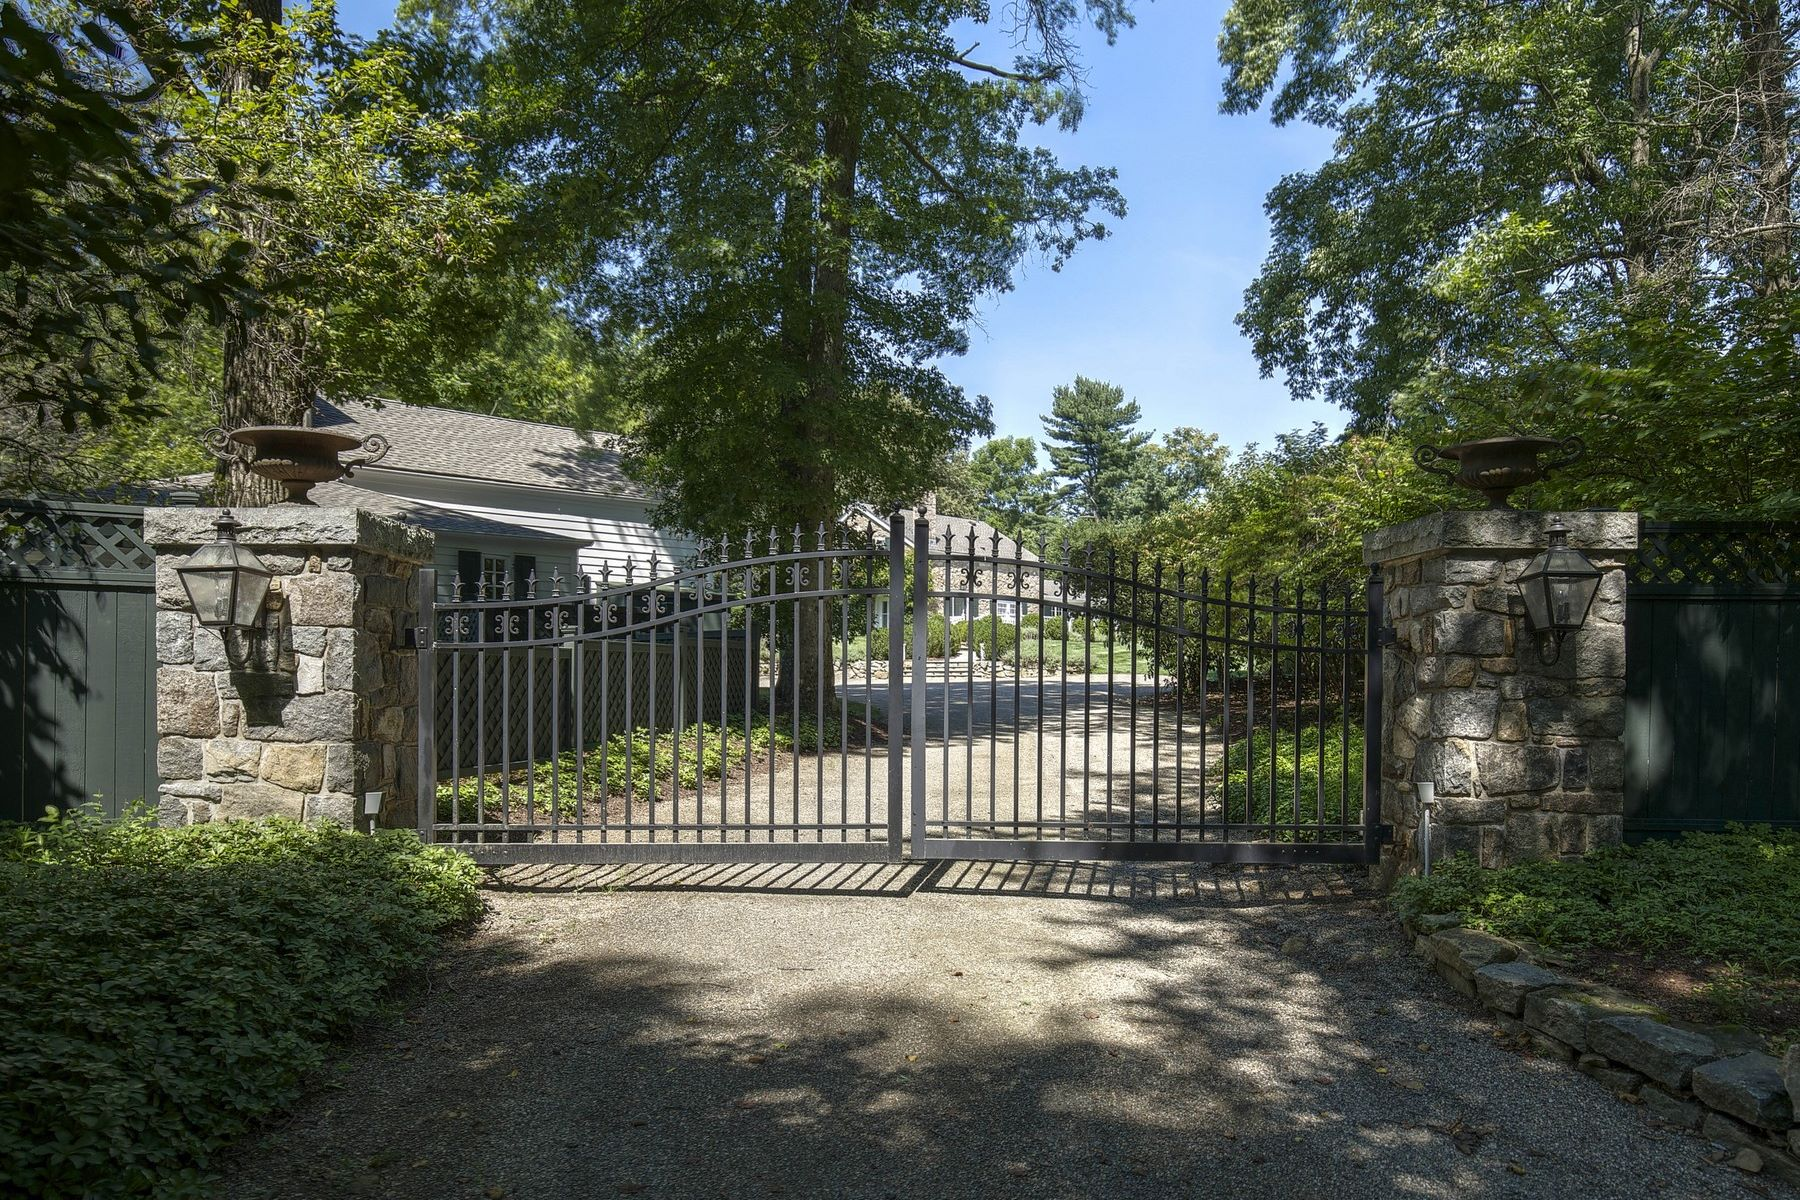 Casa Unifamiliar por un Alquiler en Captivating Carriage House Compound 86 Dryden Road, Bernardsville, Nueva Jersey, 07920 Estados Unidos